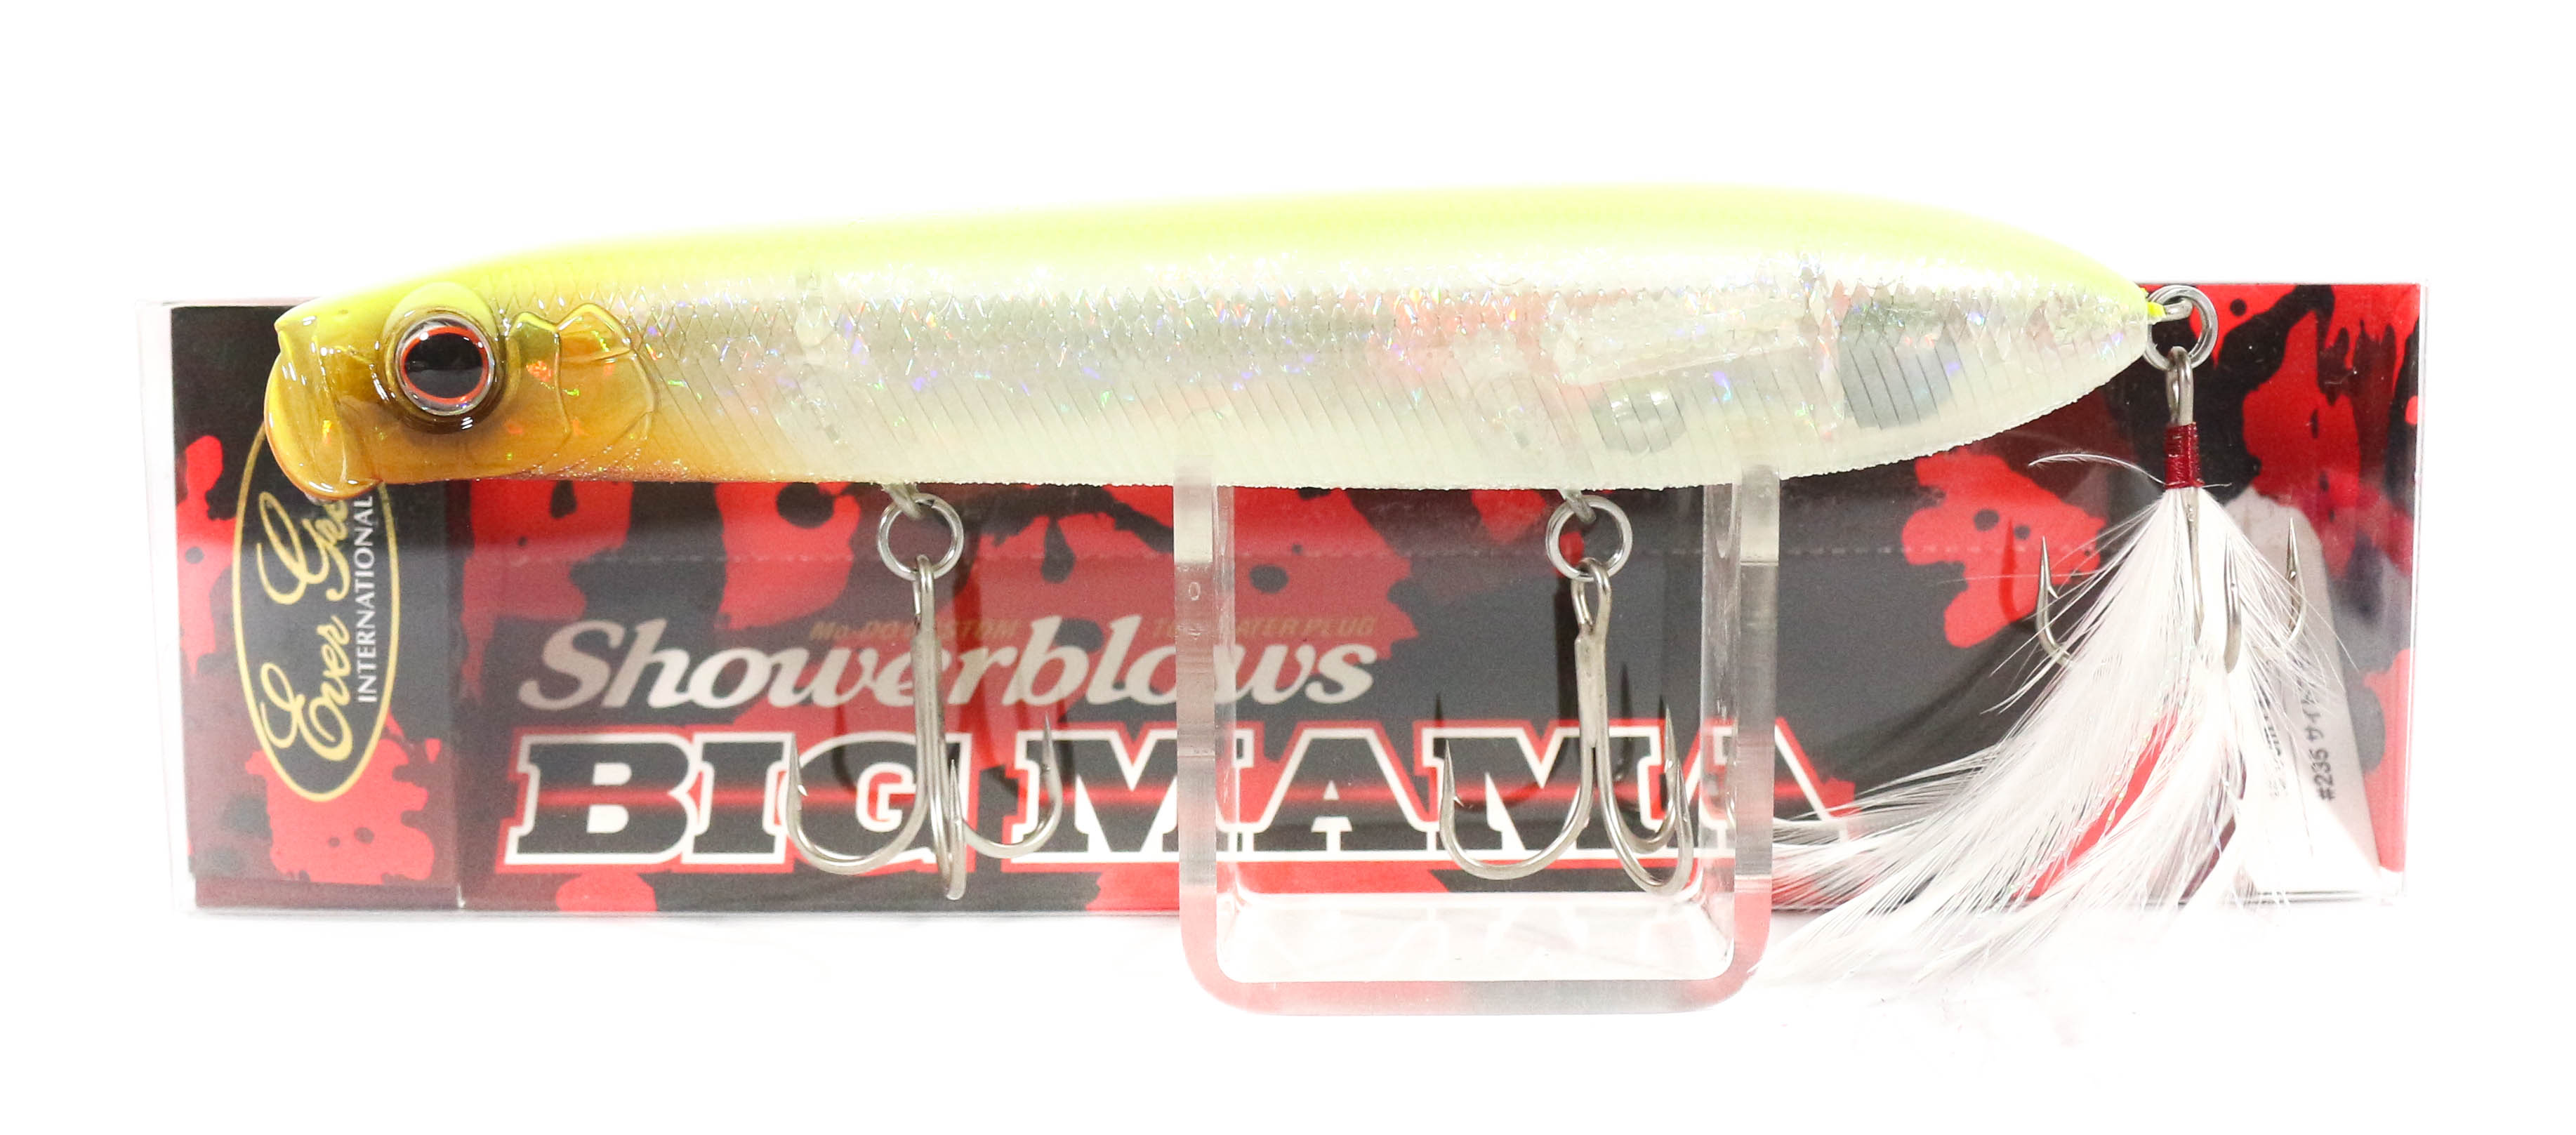 Evergreen Shower Blows Big Mama 150mm Pencil Floating Lure 59 (4298)